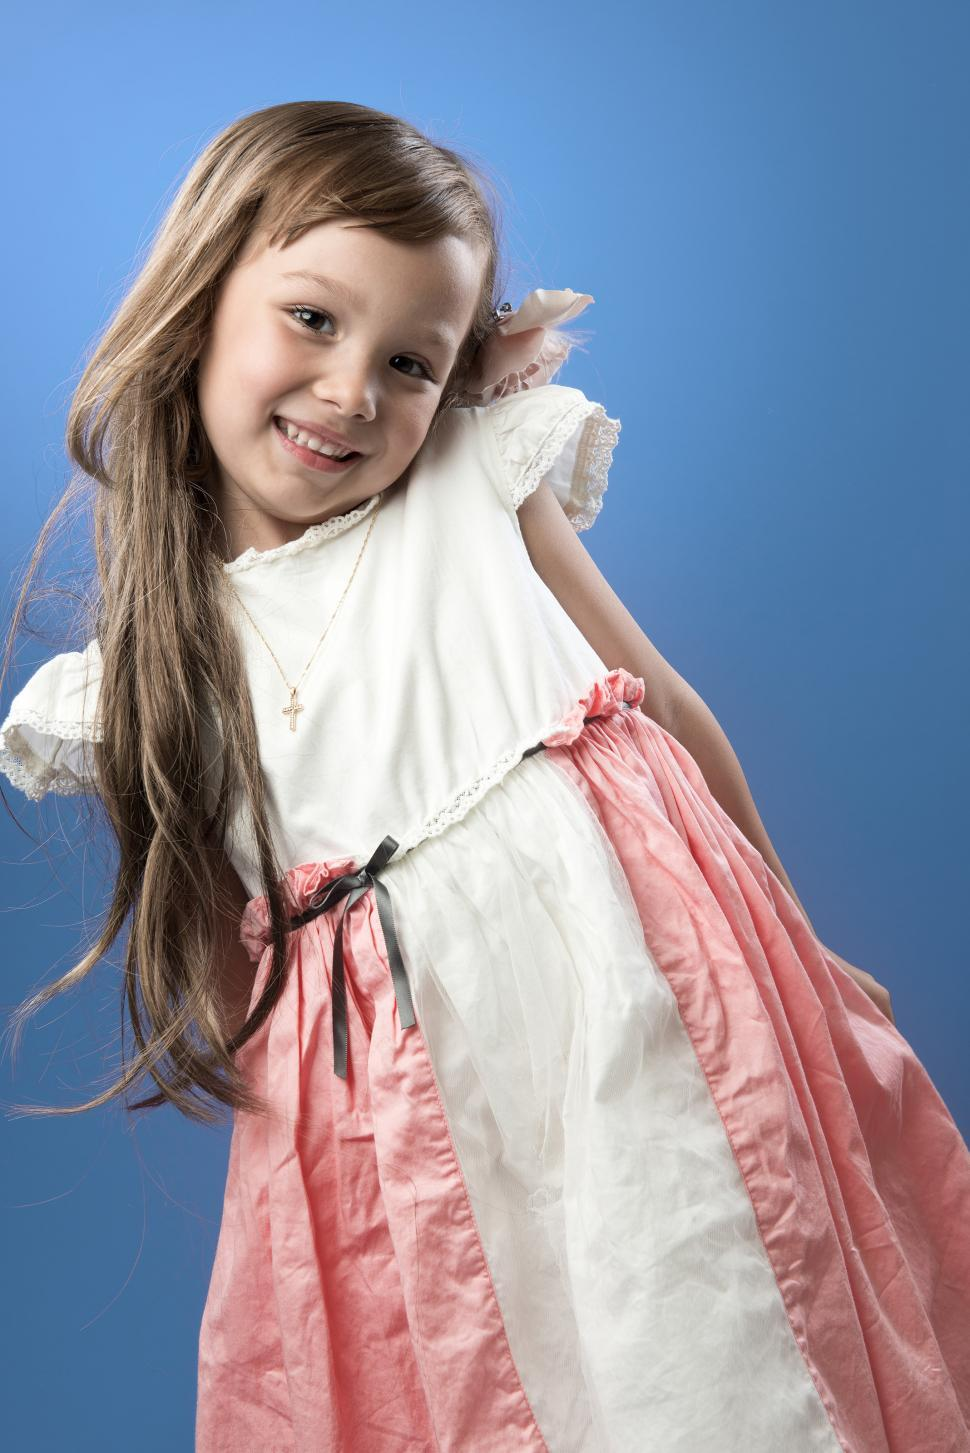 Download Free Stock HD Photo of Young child in dress Online